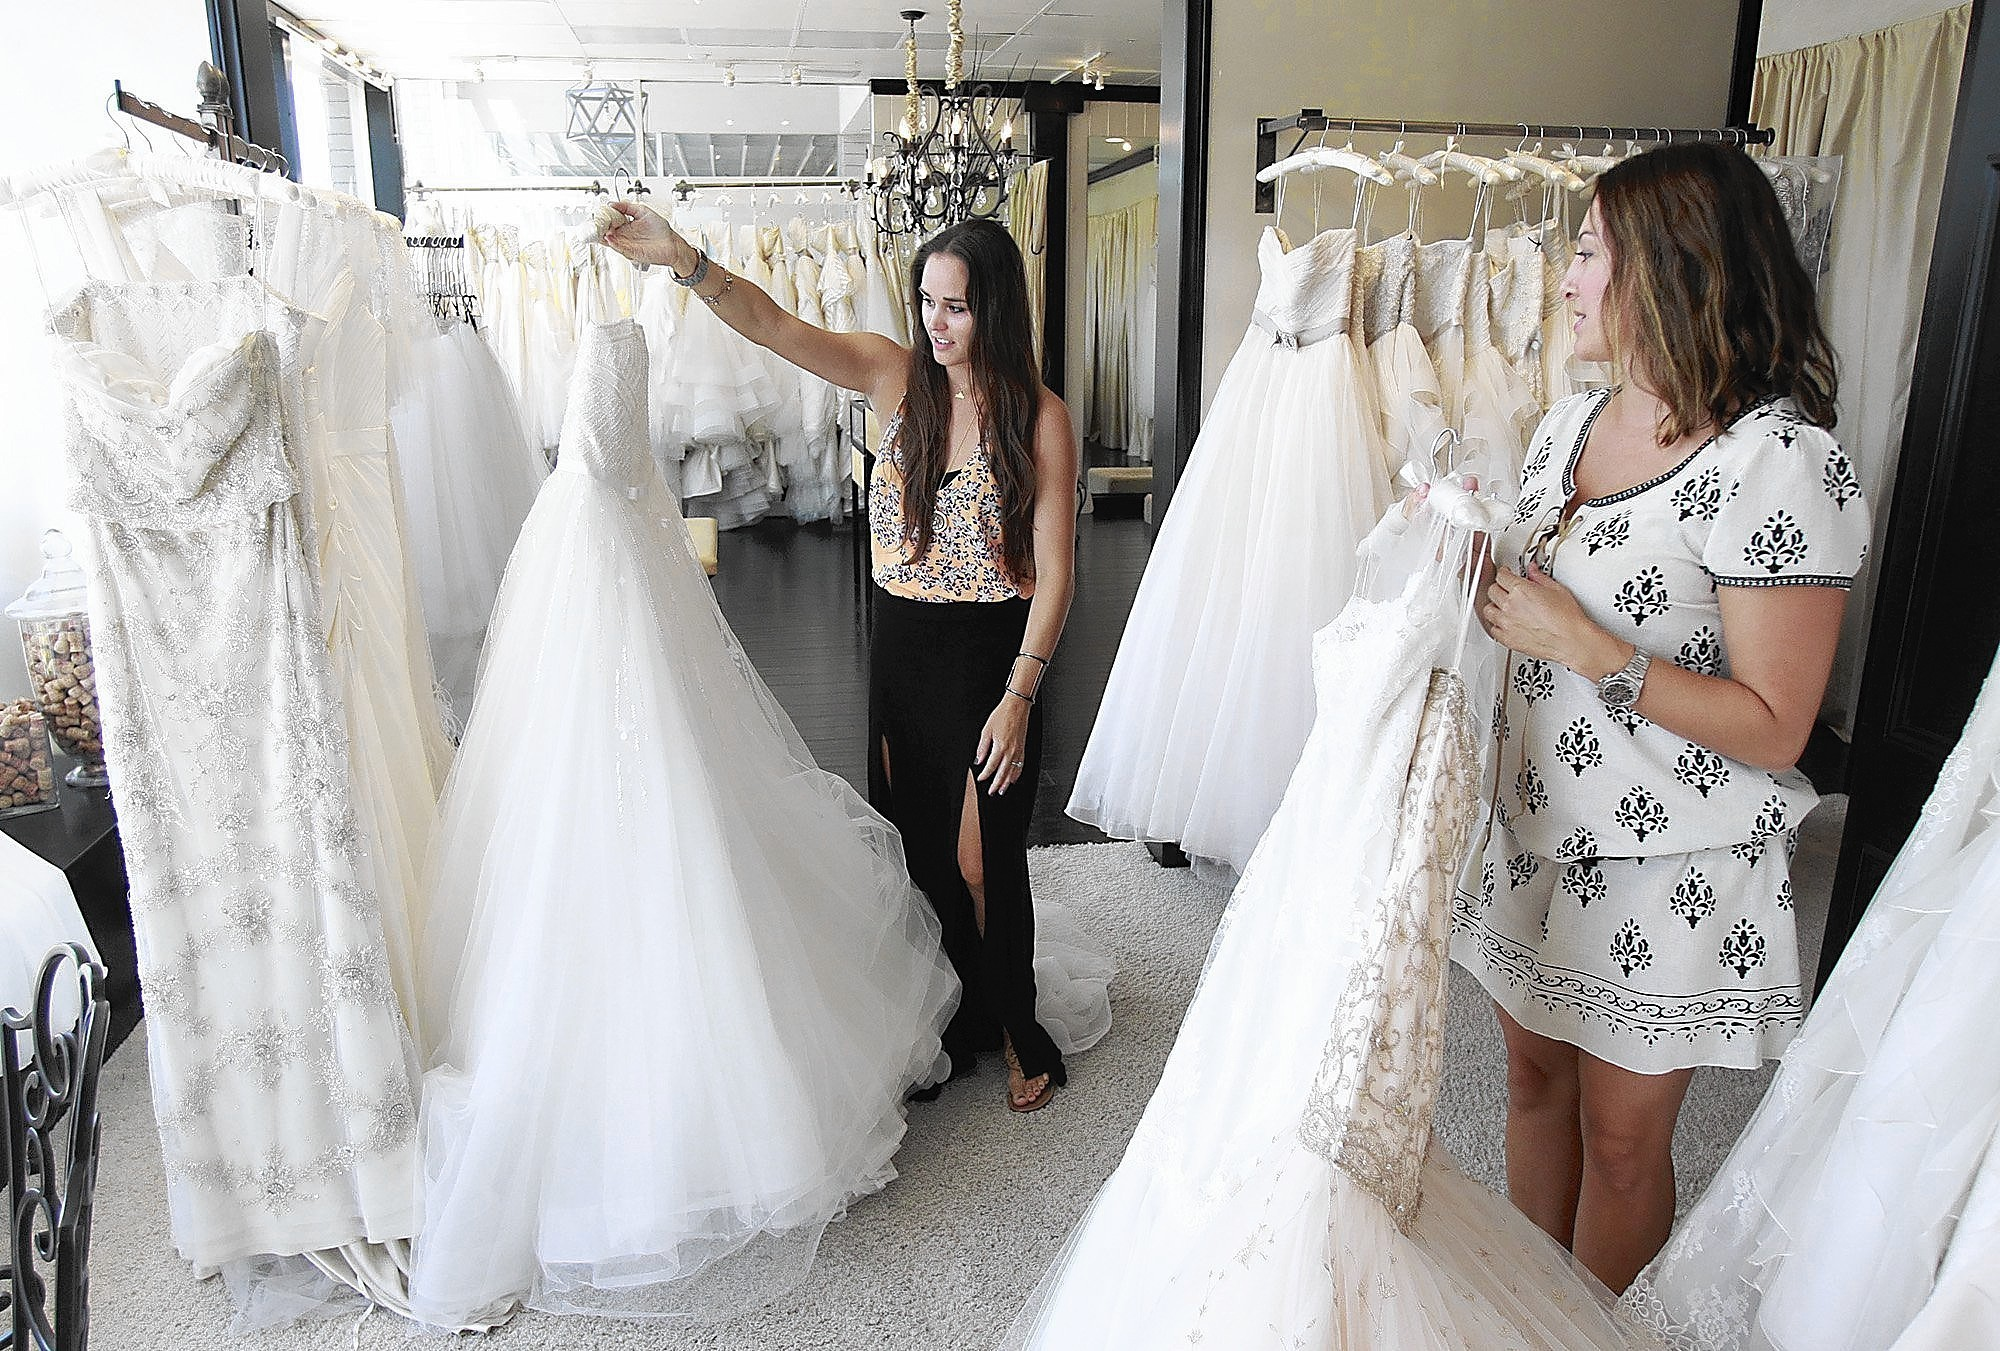 Store 39 s wedding gift to military brides free gowns la times for Free wedding dresses for military brides